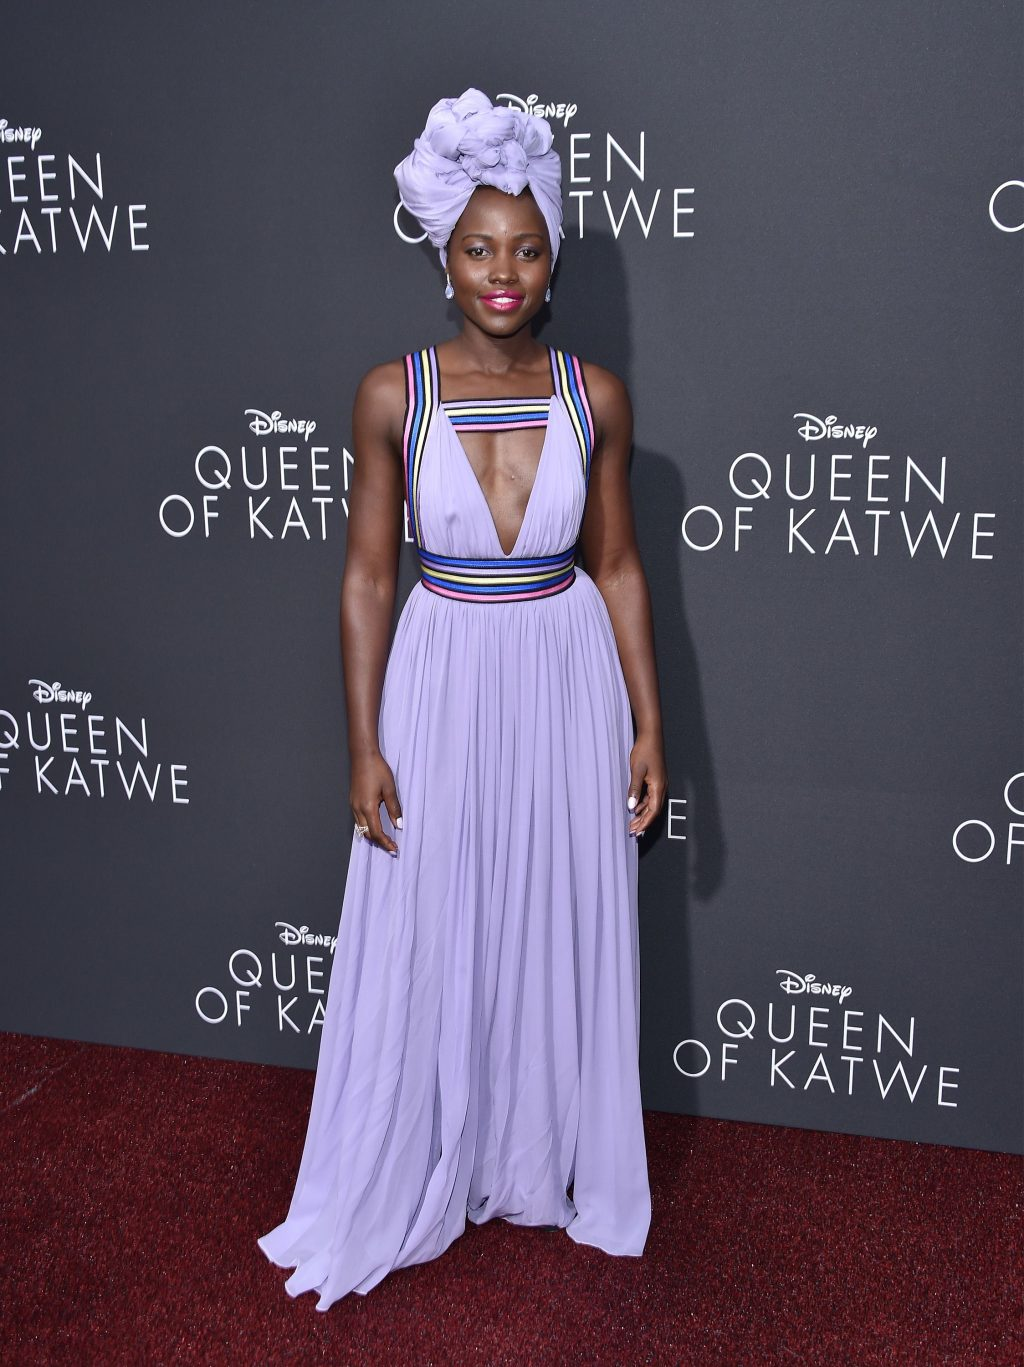 Best Dressed Celebrities September 2016 Queen of Katwe Lupita Nyong'o